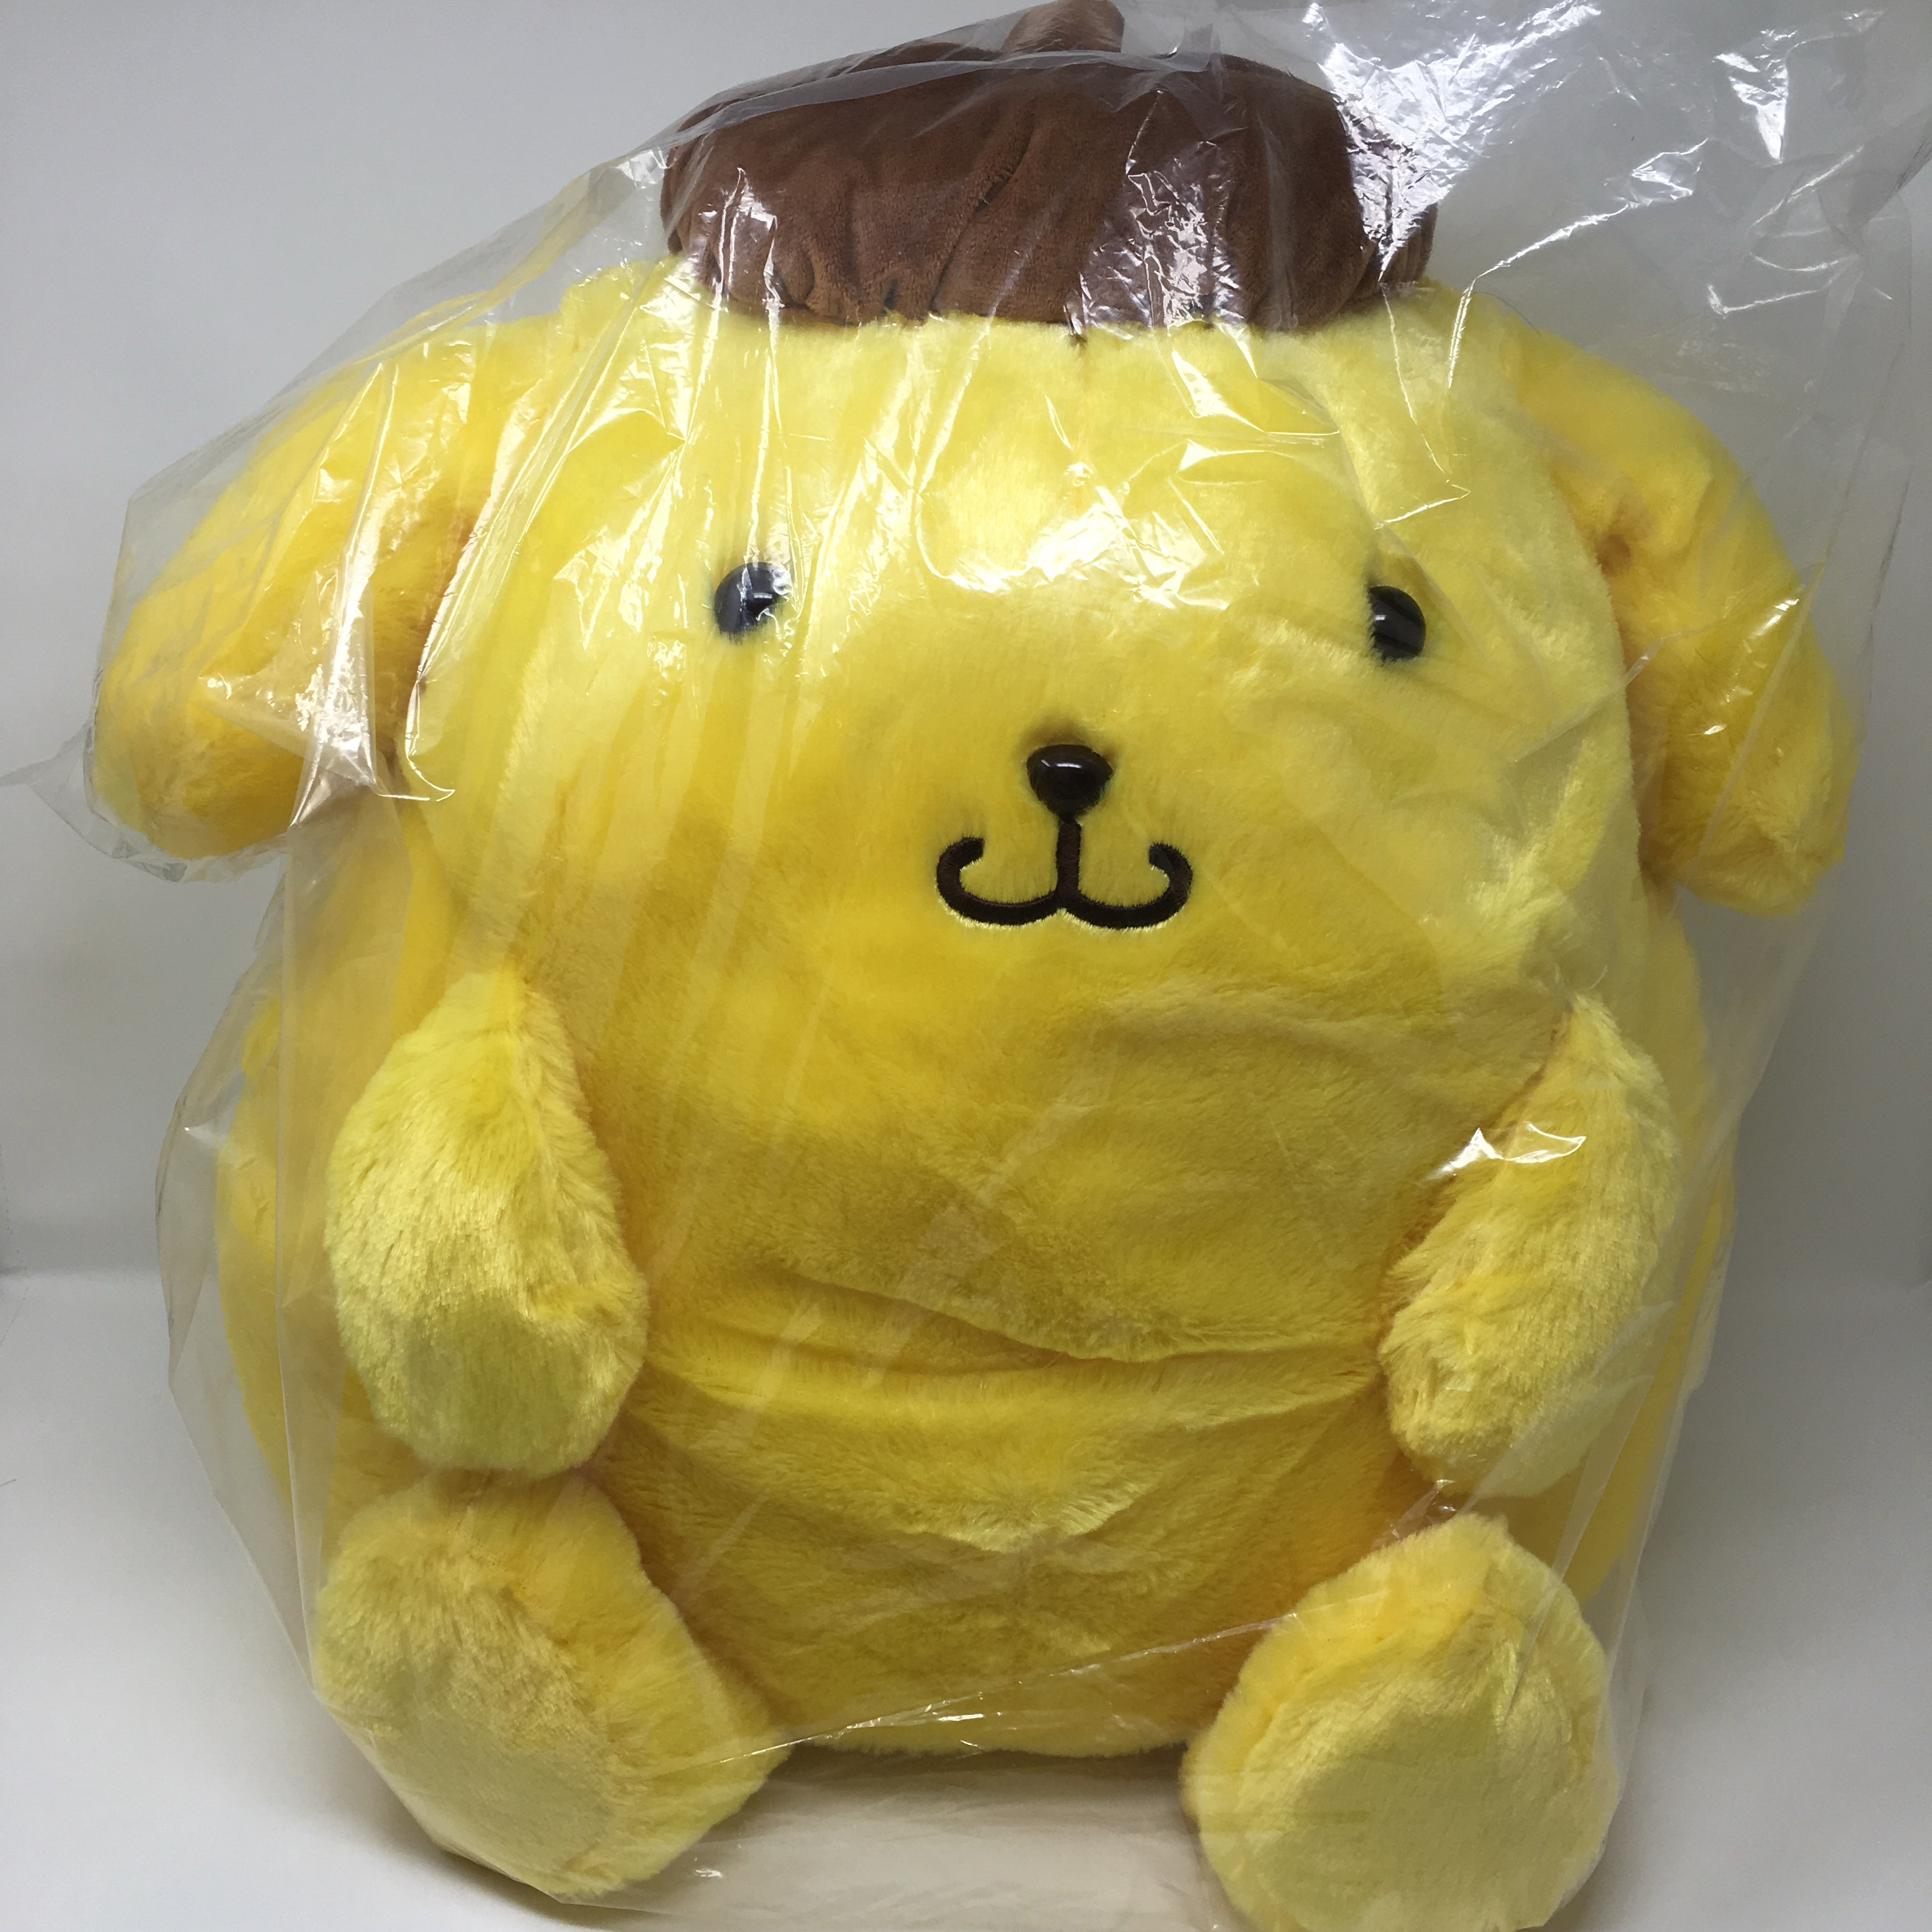 Super Soft Stuffed Animals For Babies, Super Jumbo Pompompurin Plushie Carnival Size Depop